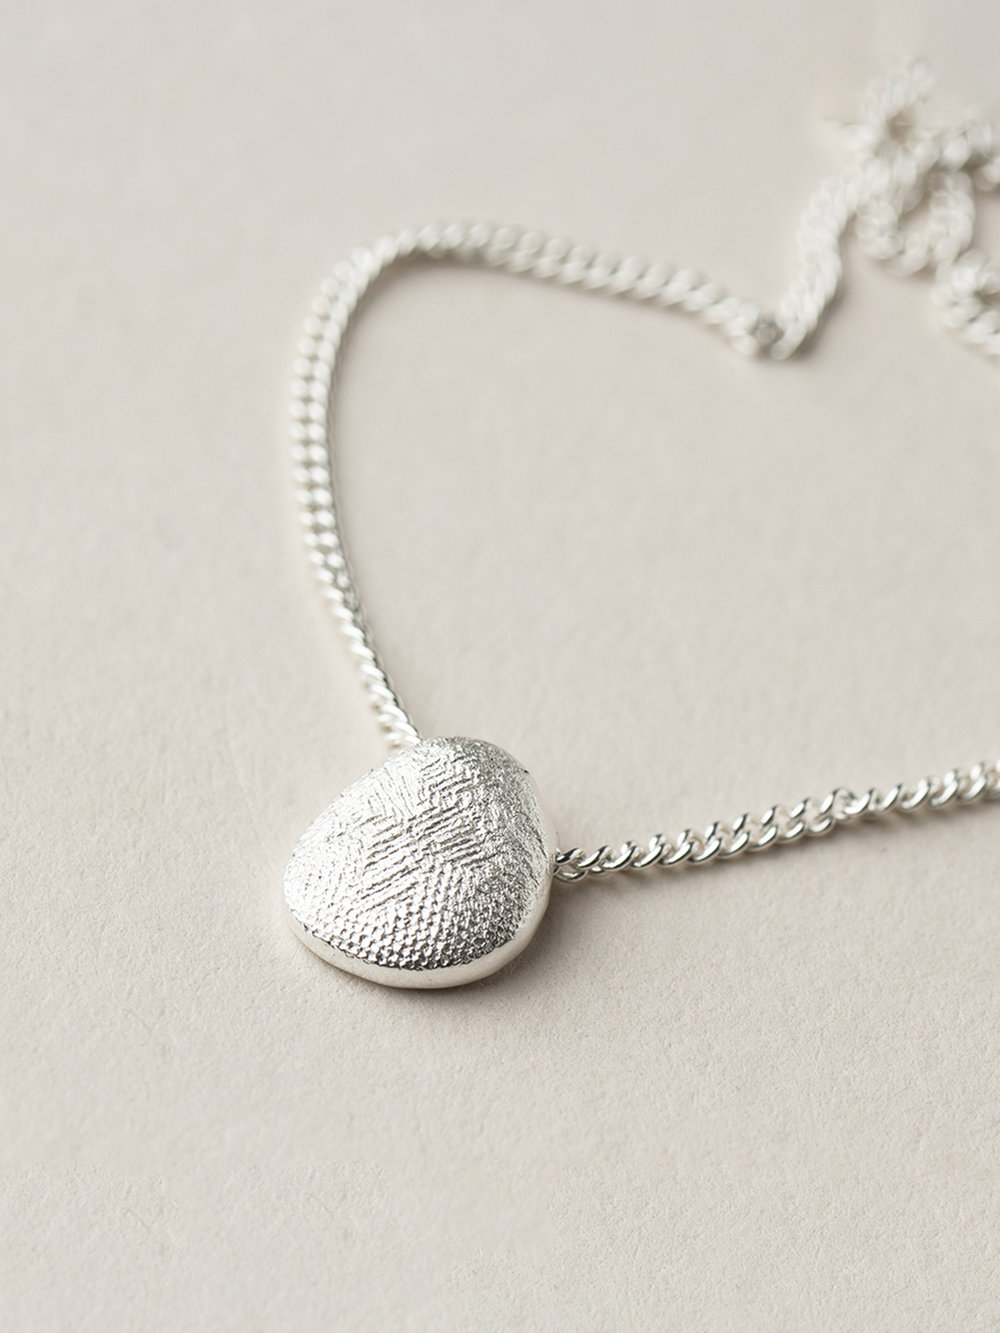 Kette Amia in 925 Silber  Amia necklace in sterling silver